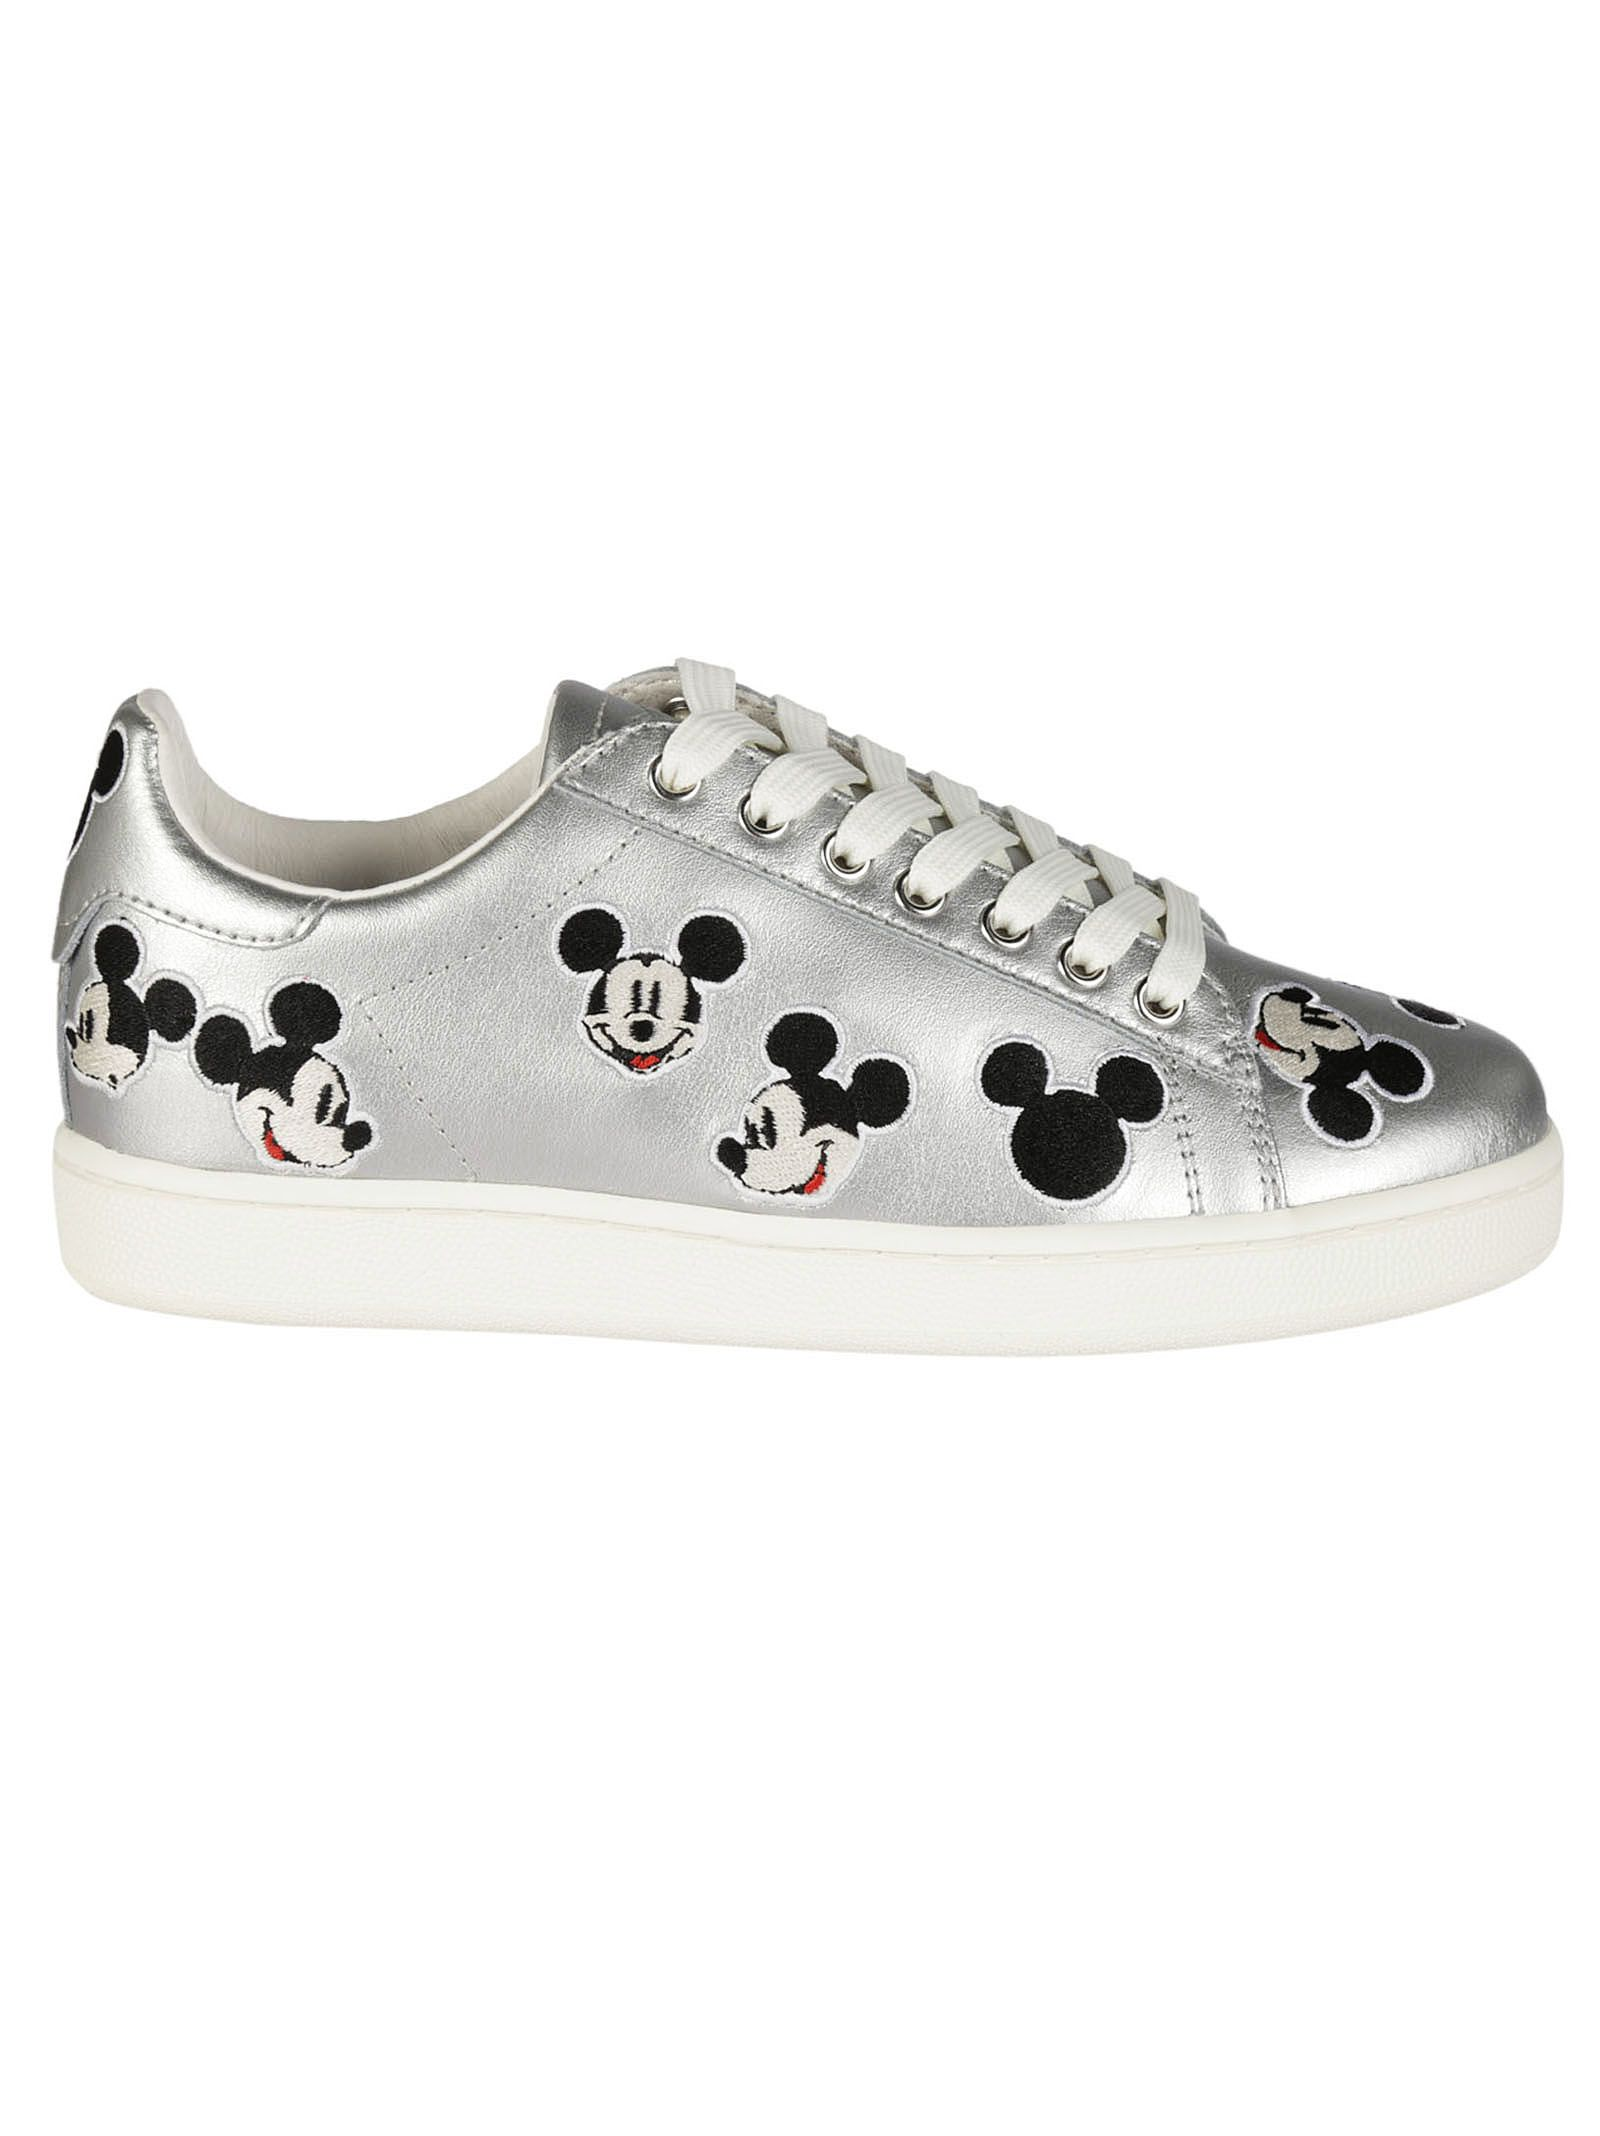 Mickey Mouse platform sneakers - Metallic MOA Master Of Arts